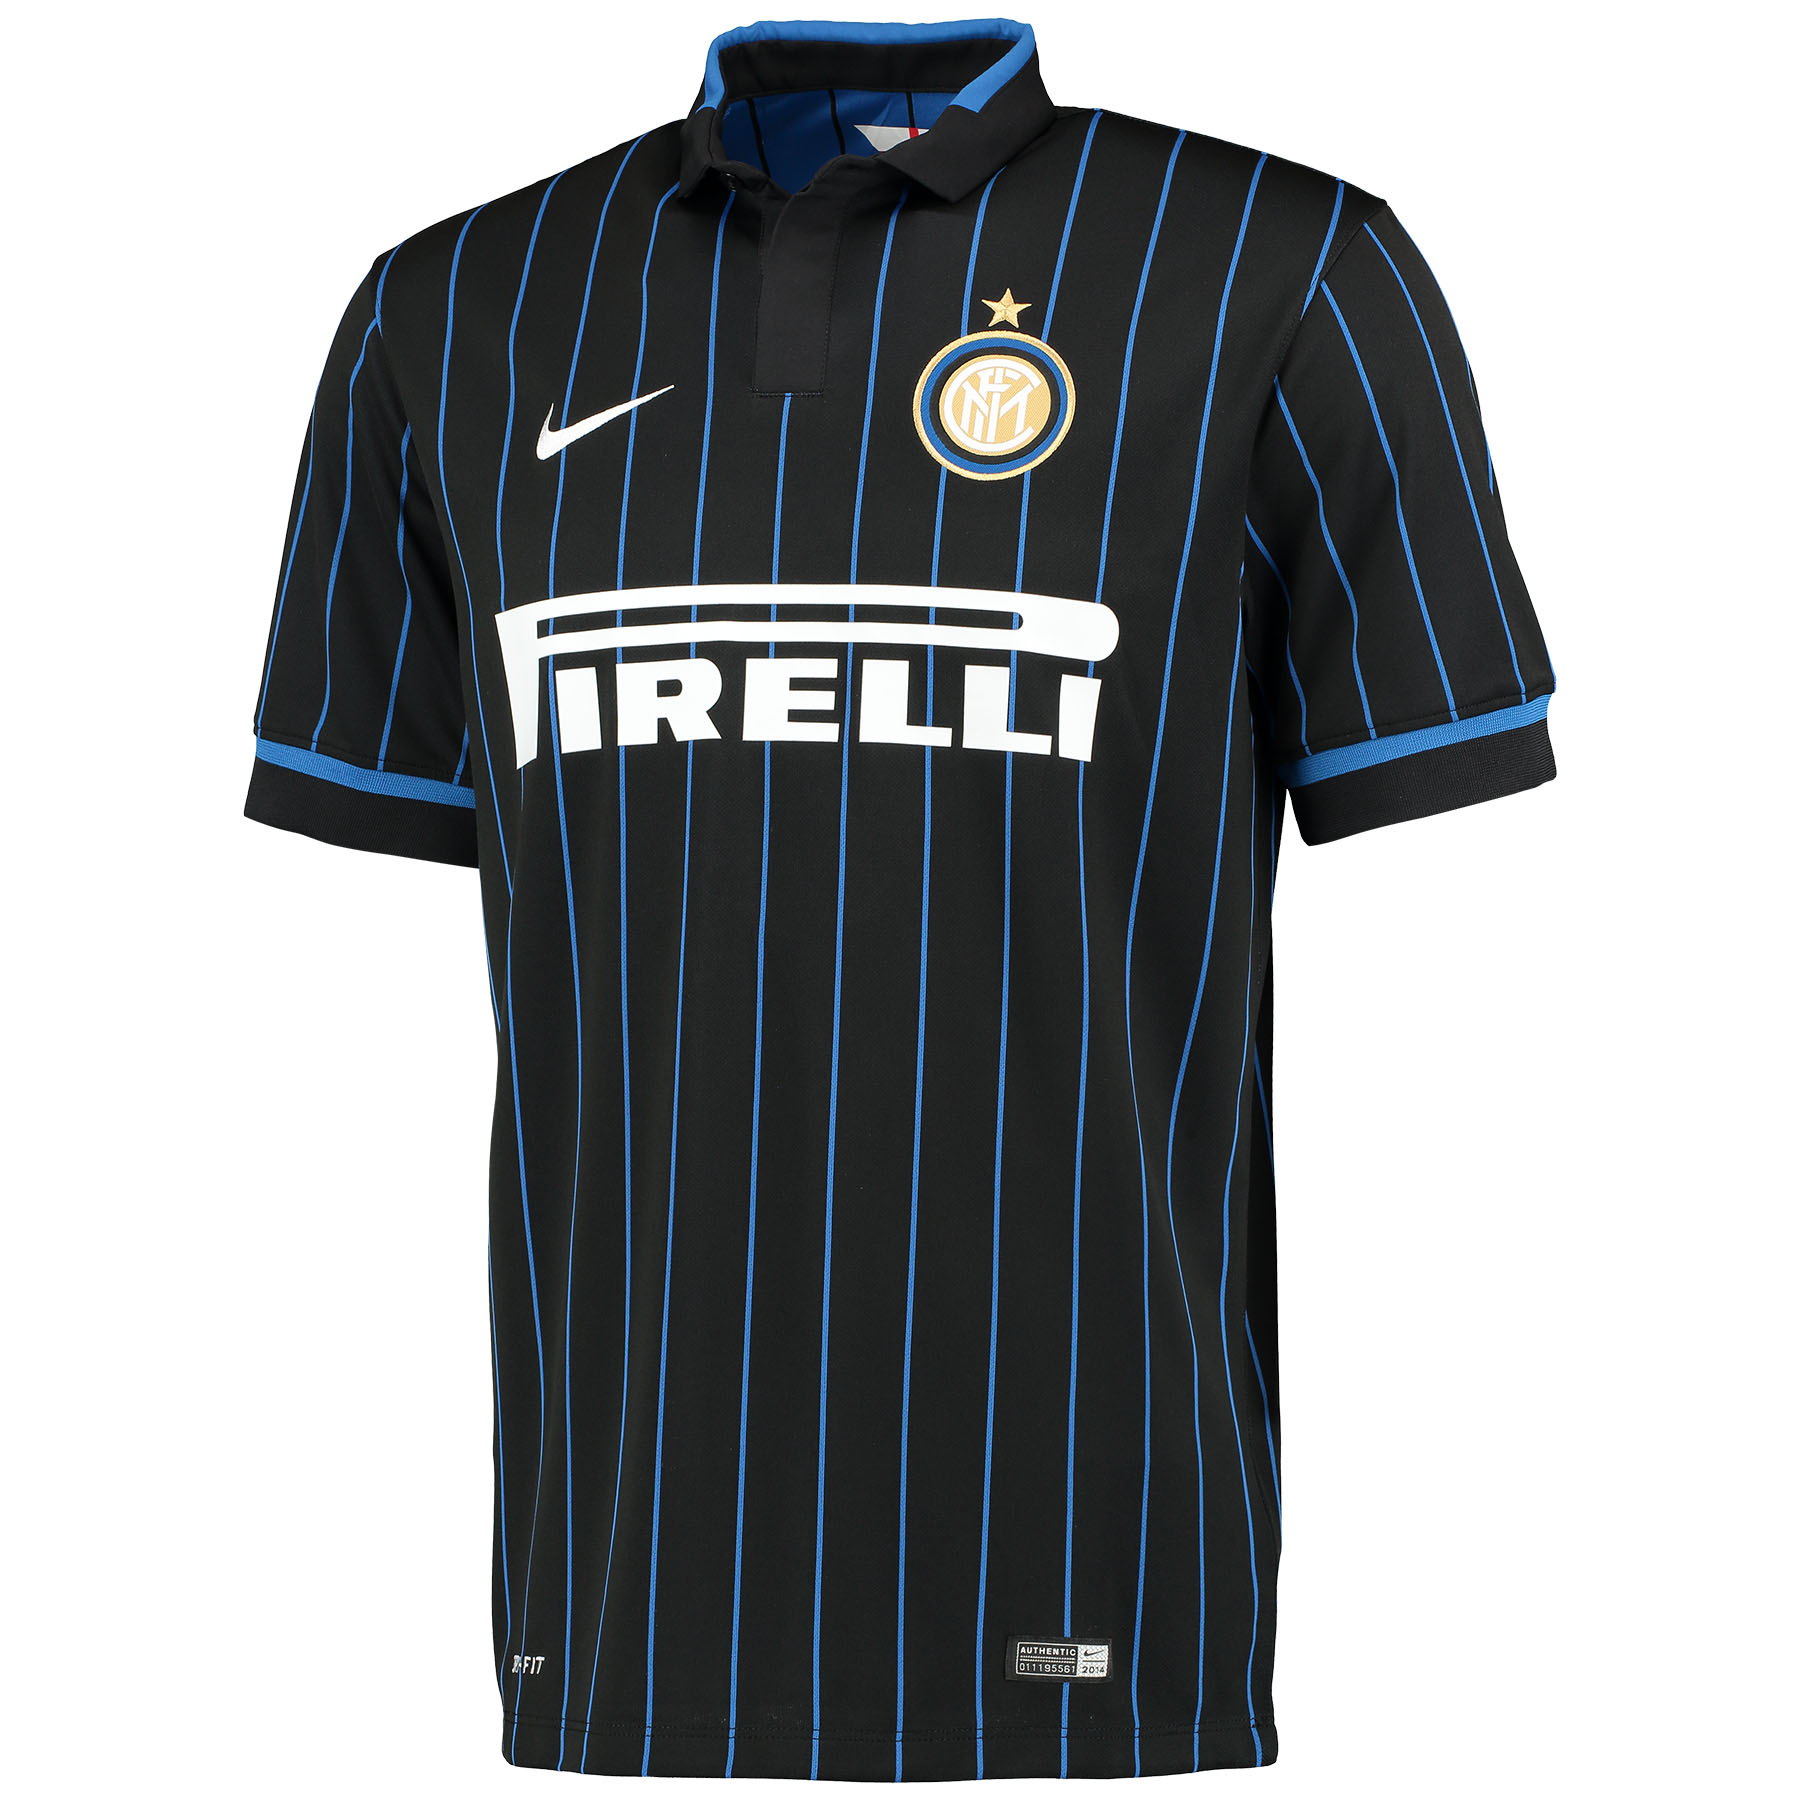 Inter Milan Home Shirt 2014/15 Black